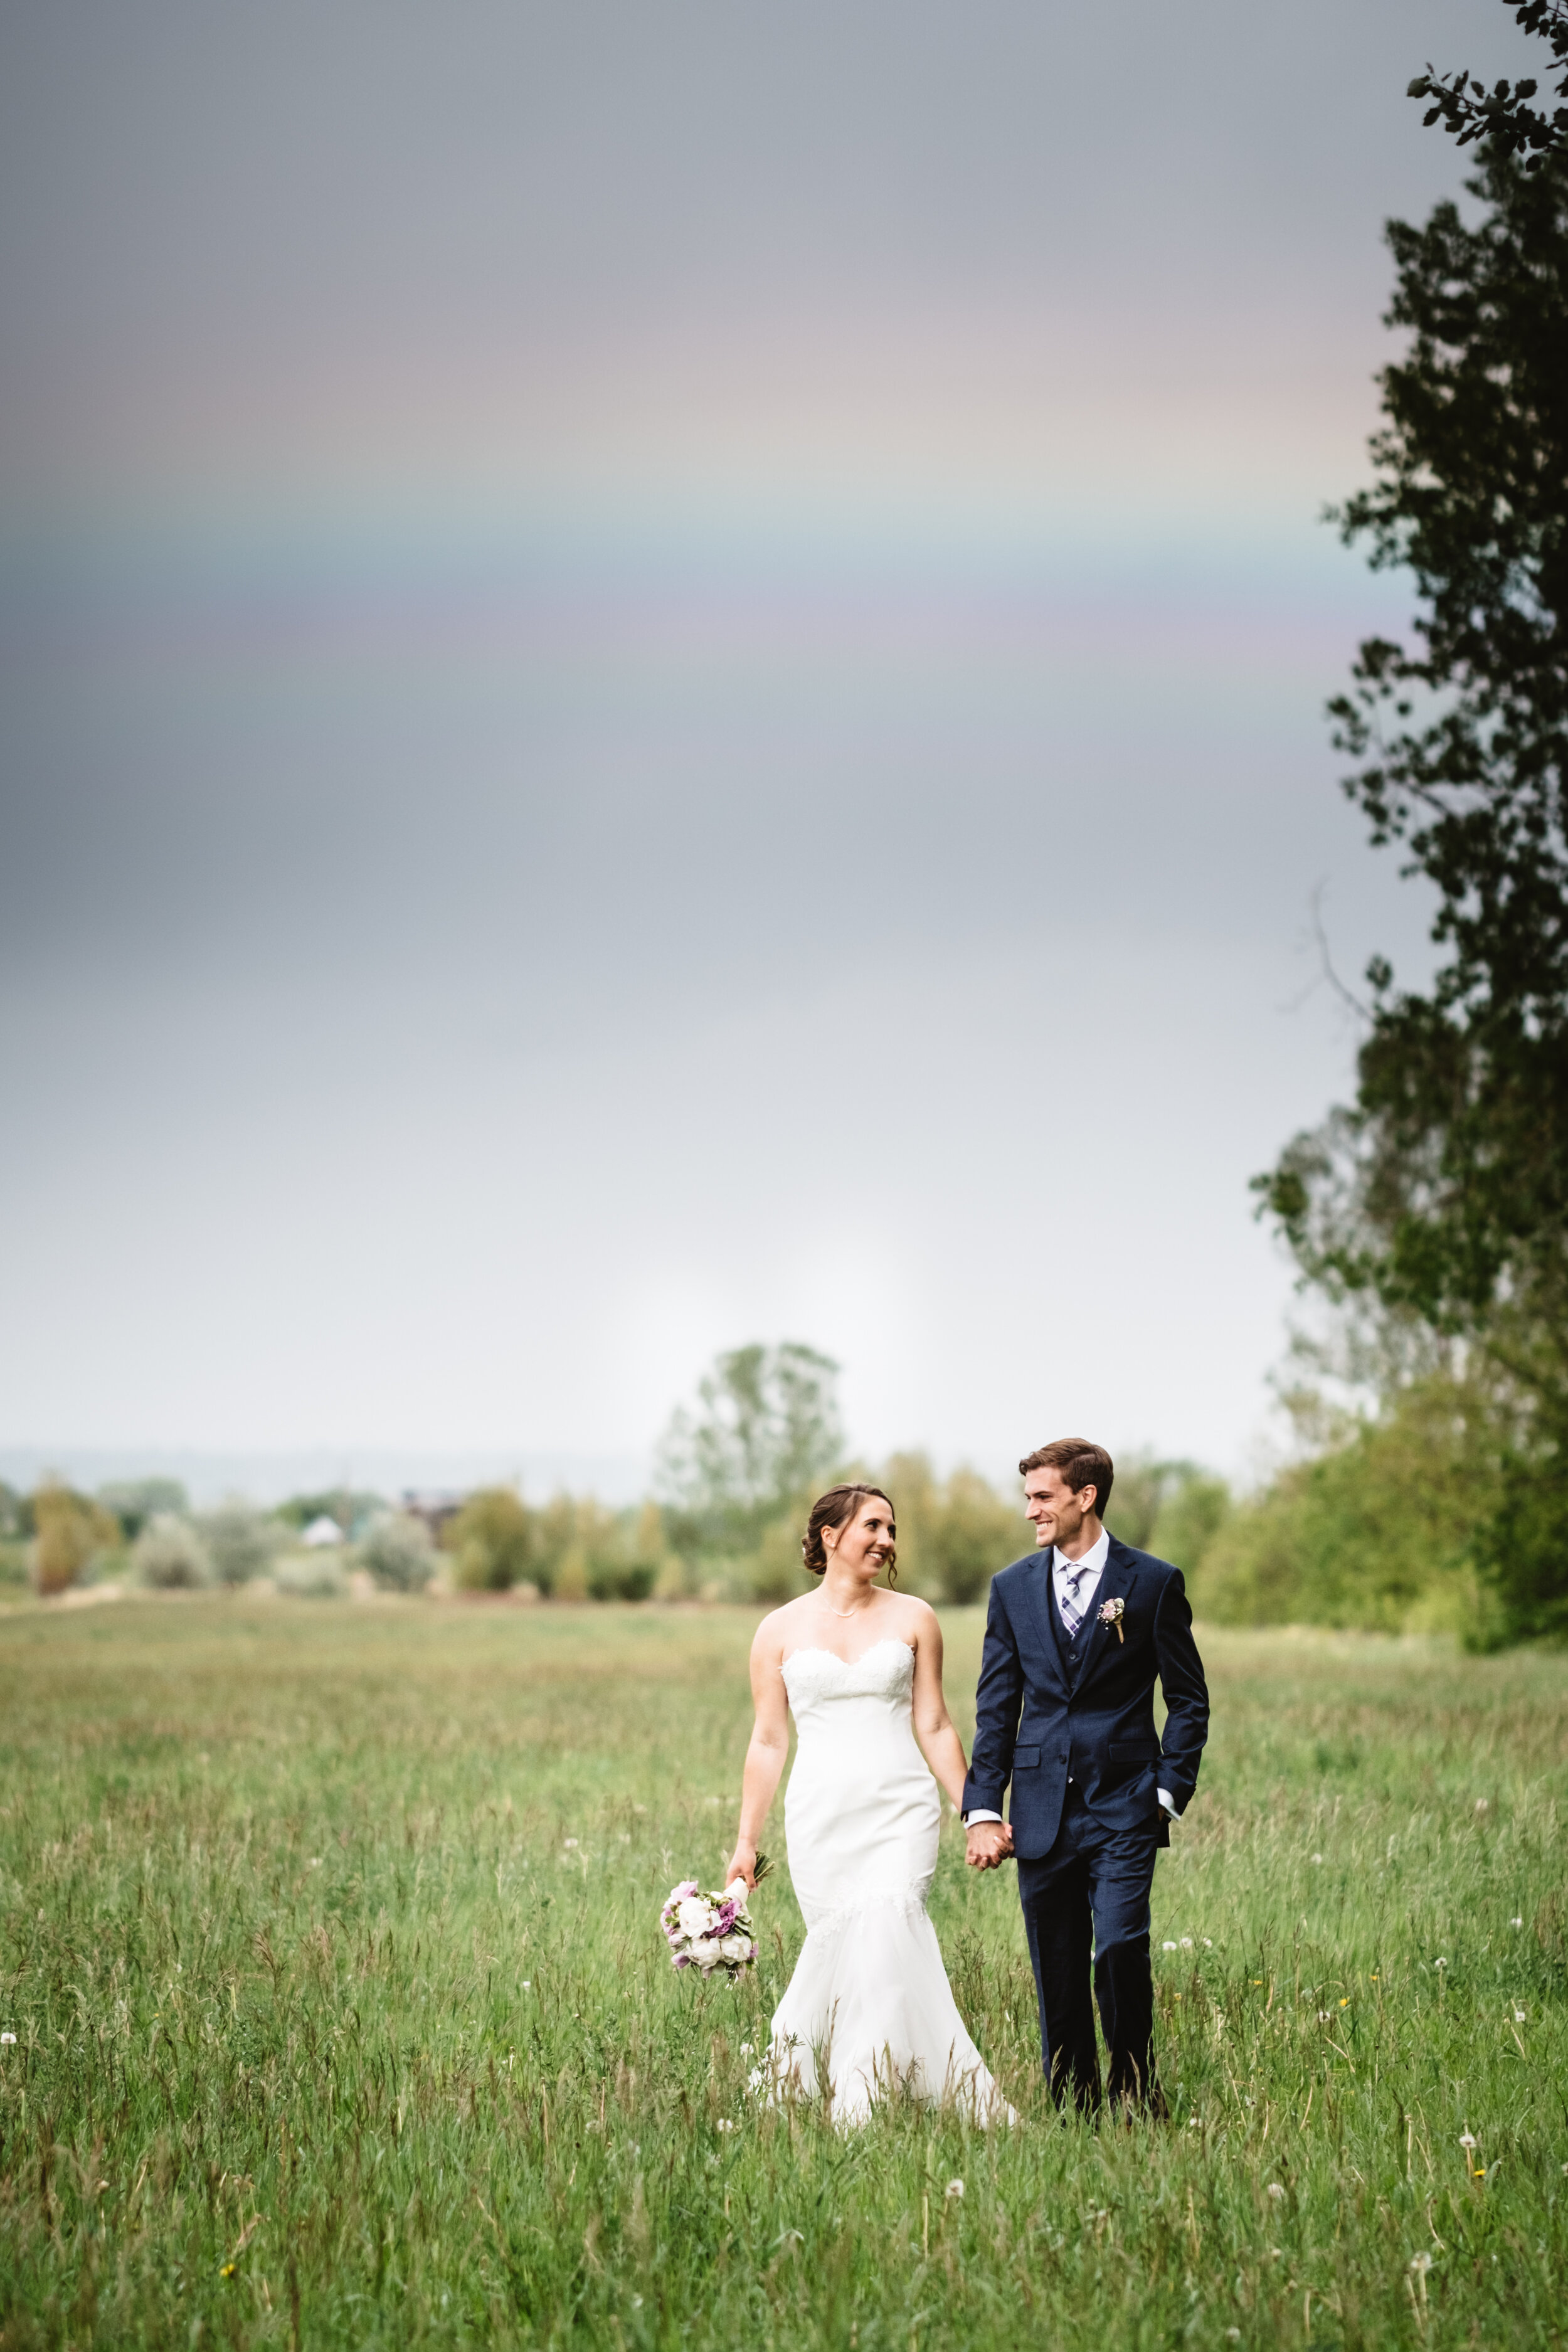 Chelsie + Mike got so lucky with this rainbow over the grounds of Lone Hawk Farm right after their ceremony. This is one of the pasture areas at the farm which is just gorgeous for photos!